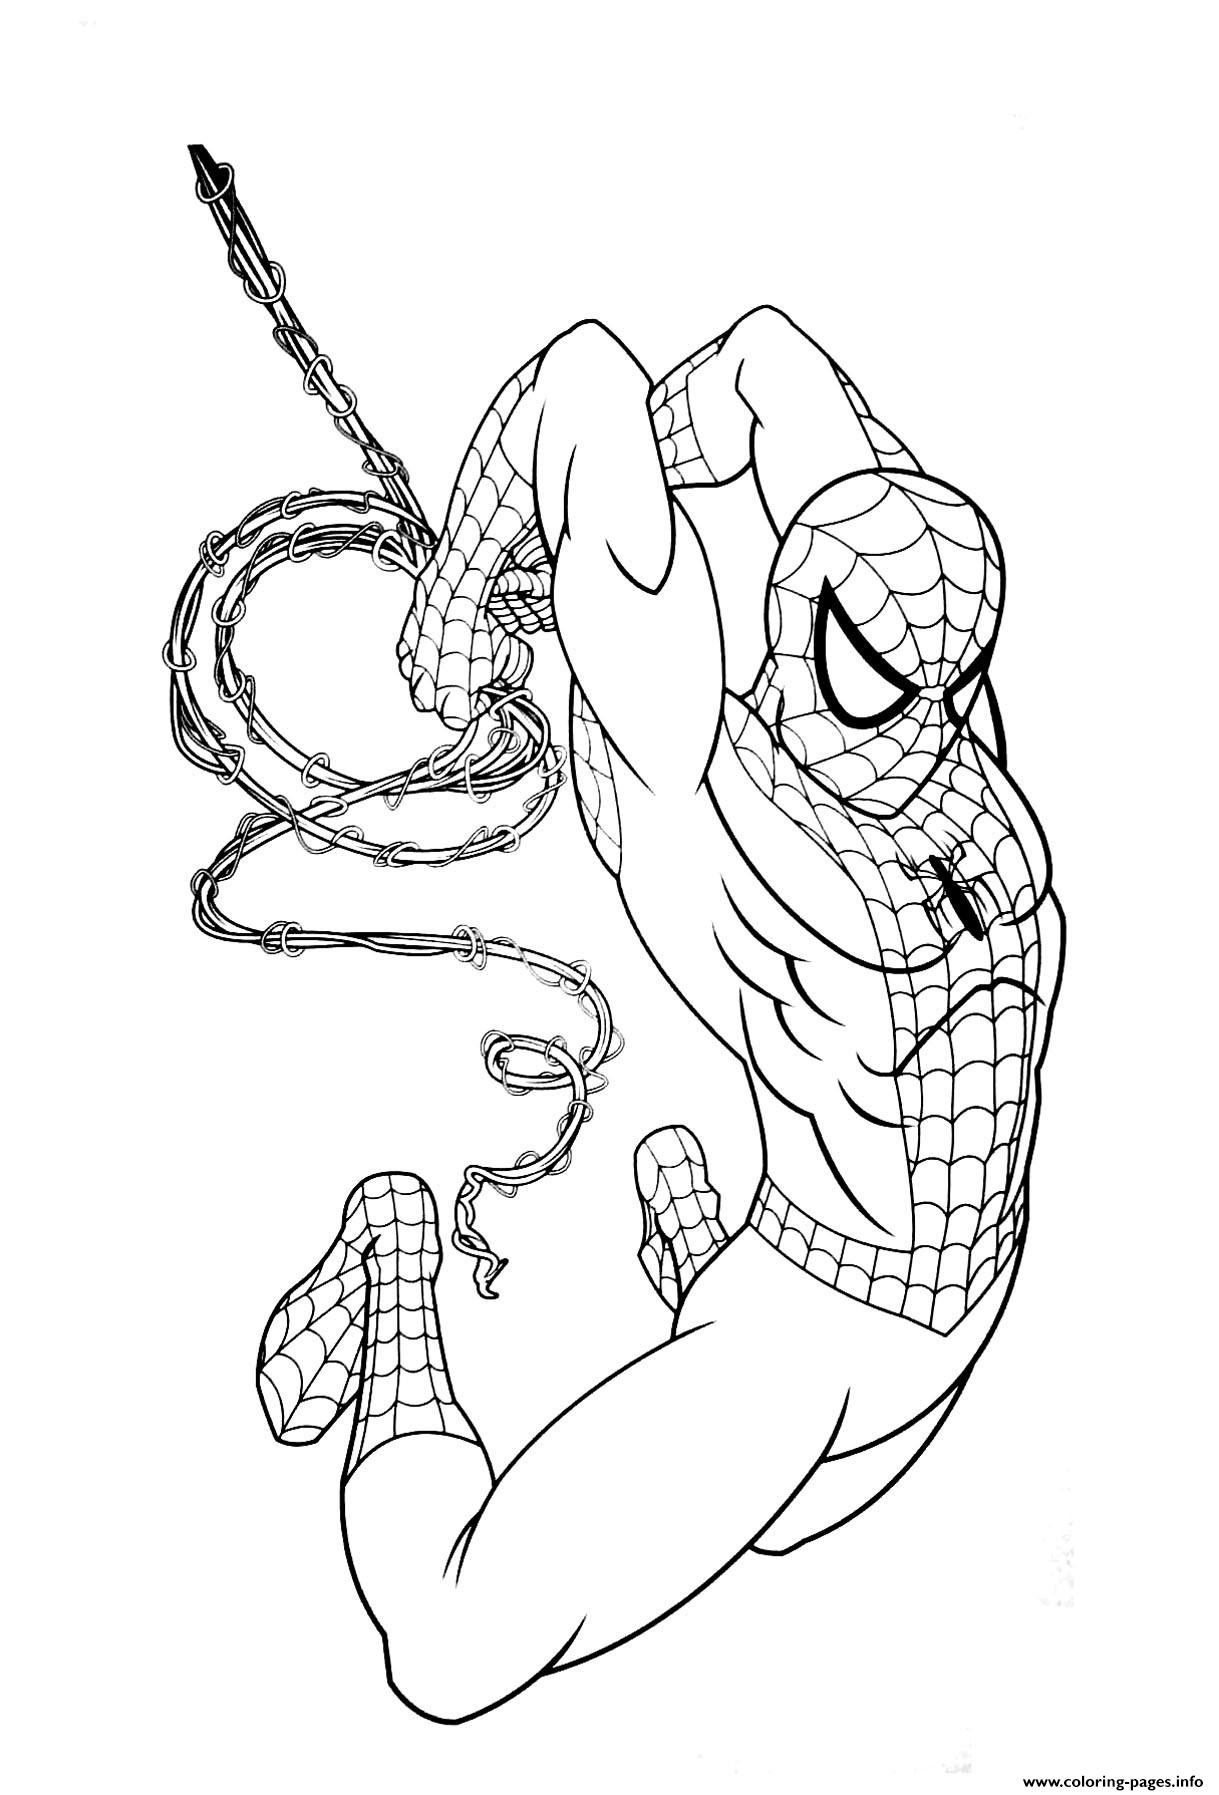 spiderman endgame coloring pages cute easy printable spiderman coloring pages 2020 spiderman coloring endgame pages